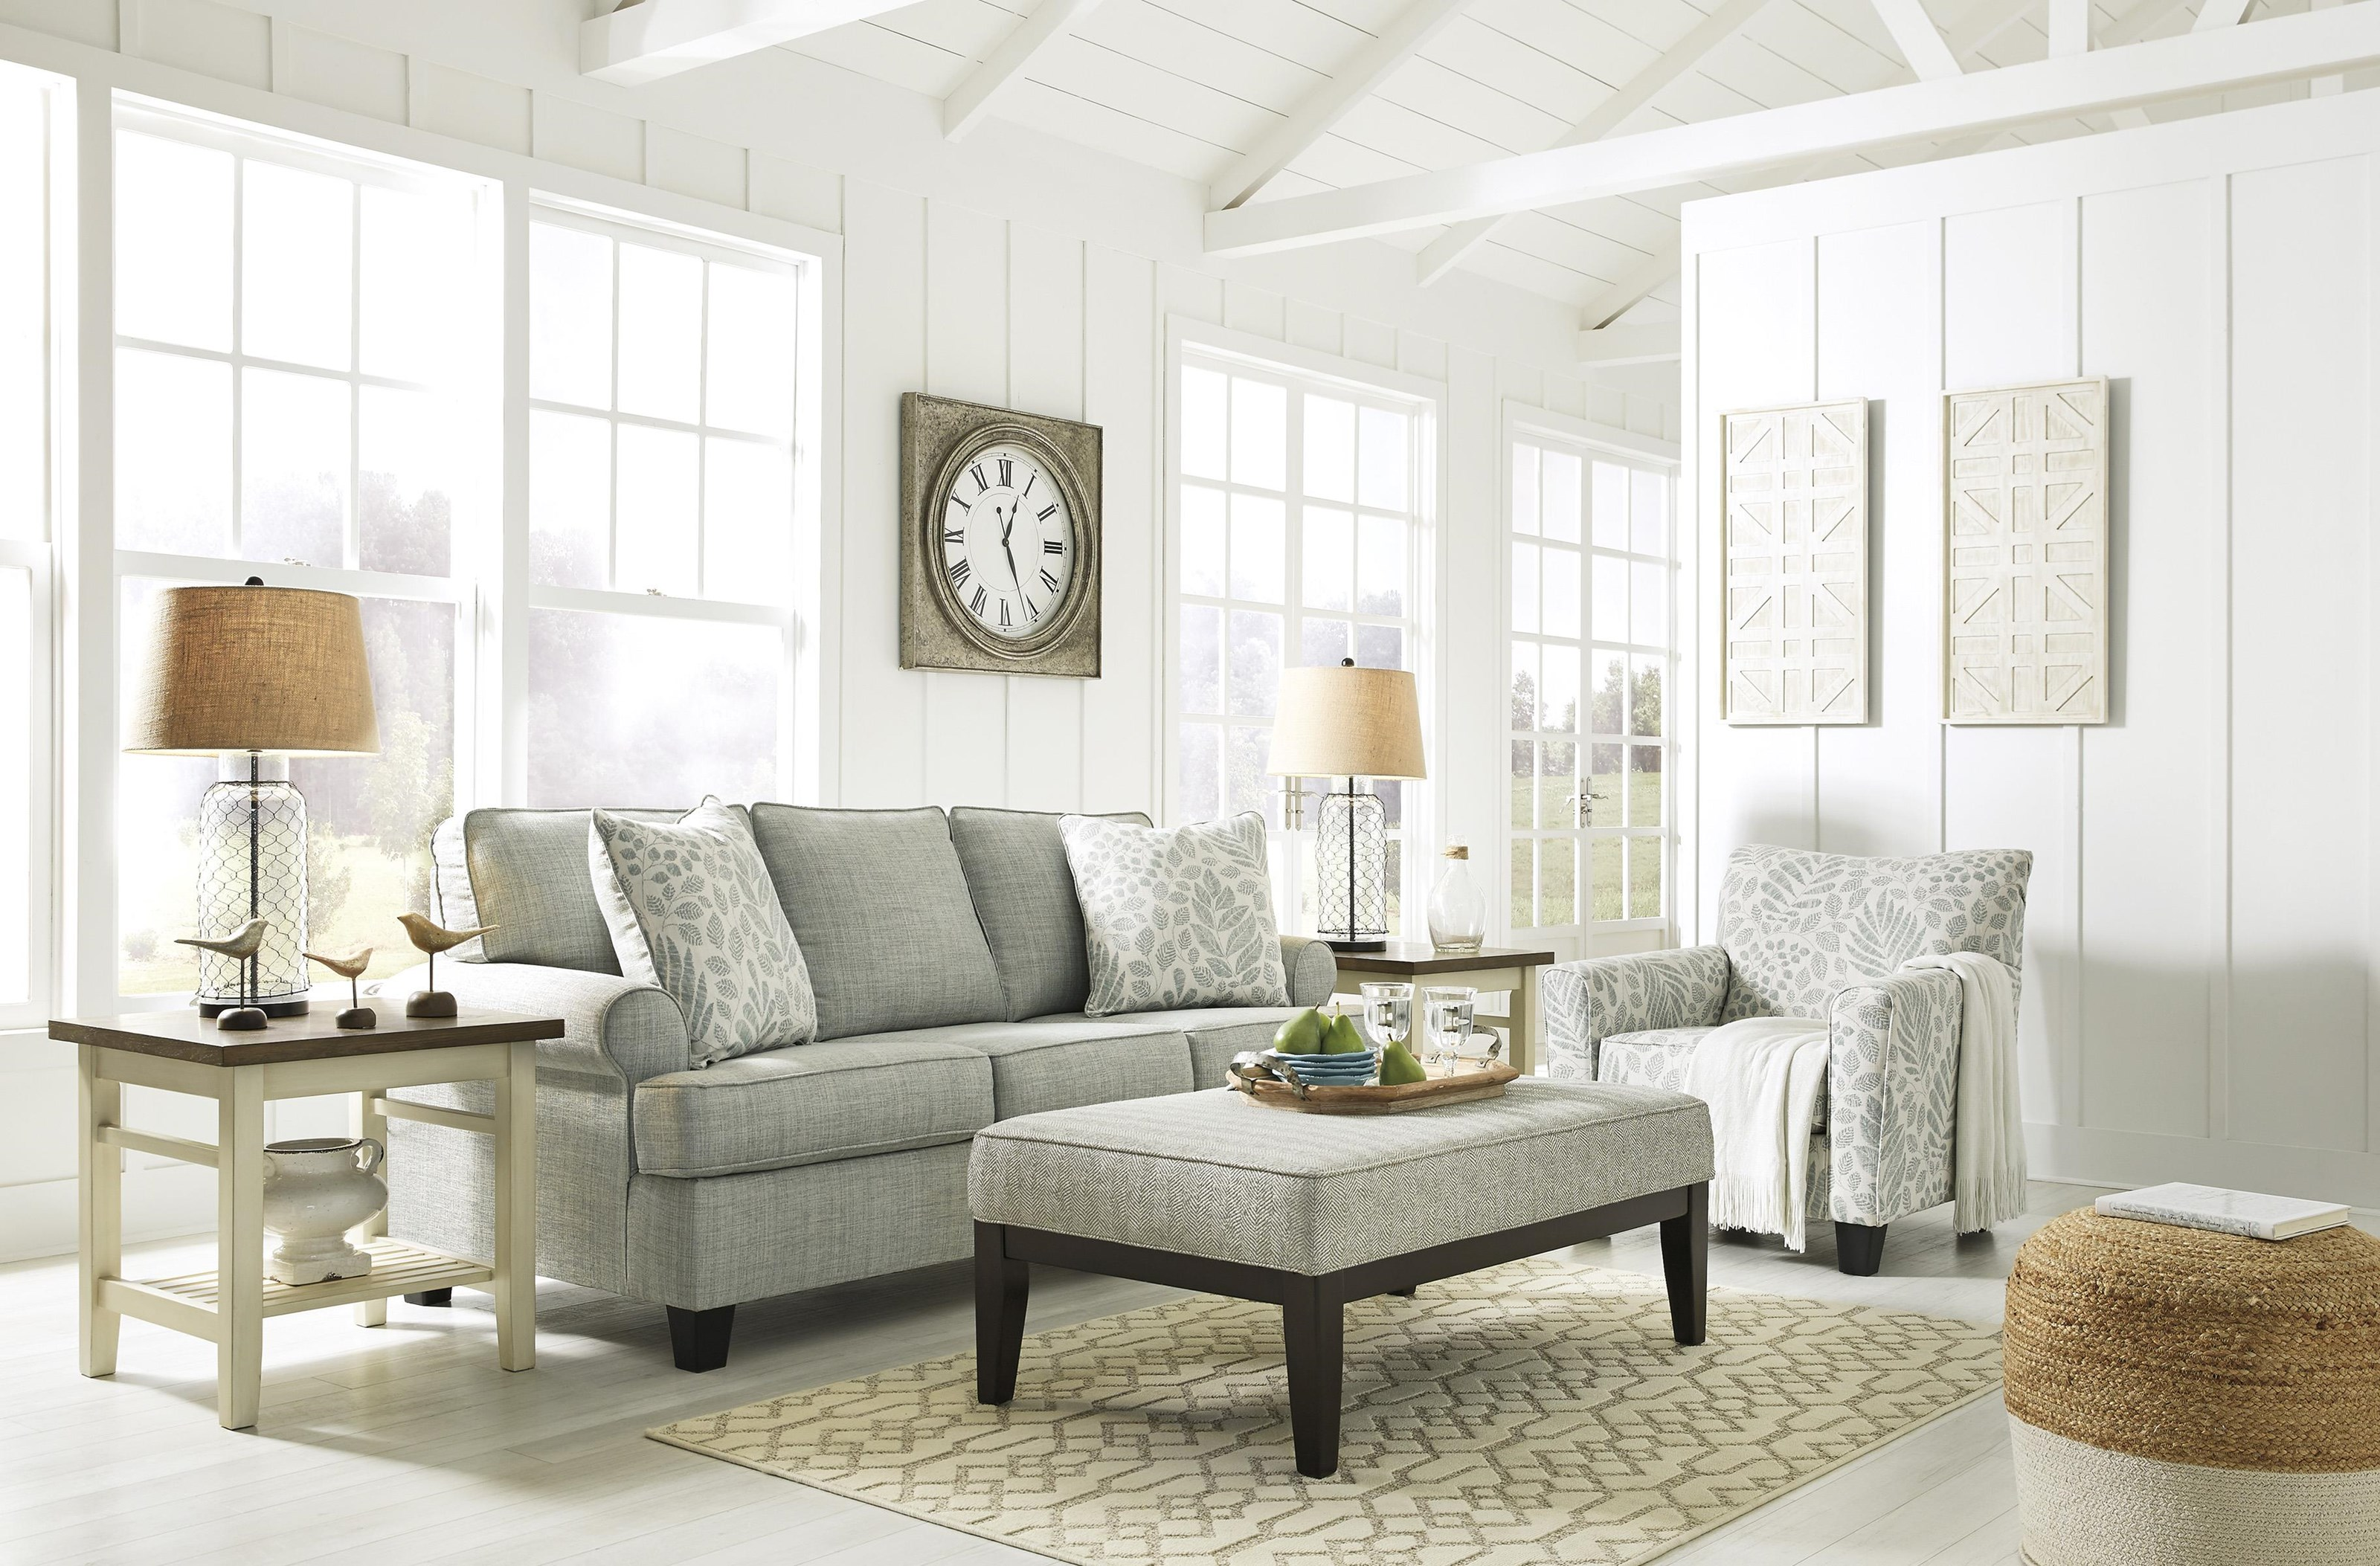 Astonishing Kilarney Sofa Accent Chair And Accent Ottoman Set Dailytribune Chair Design For Home Dailytribuneorg